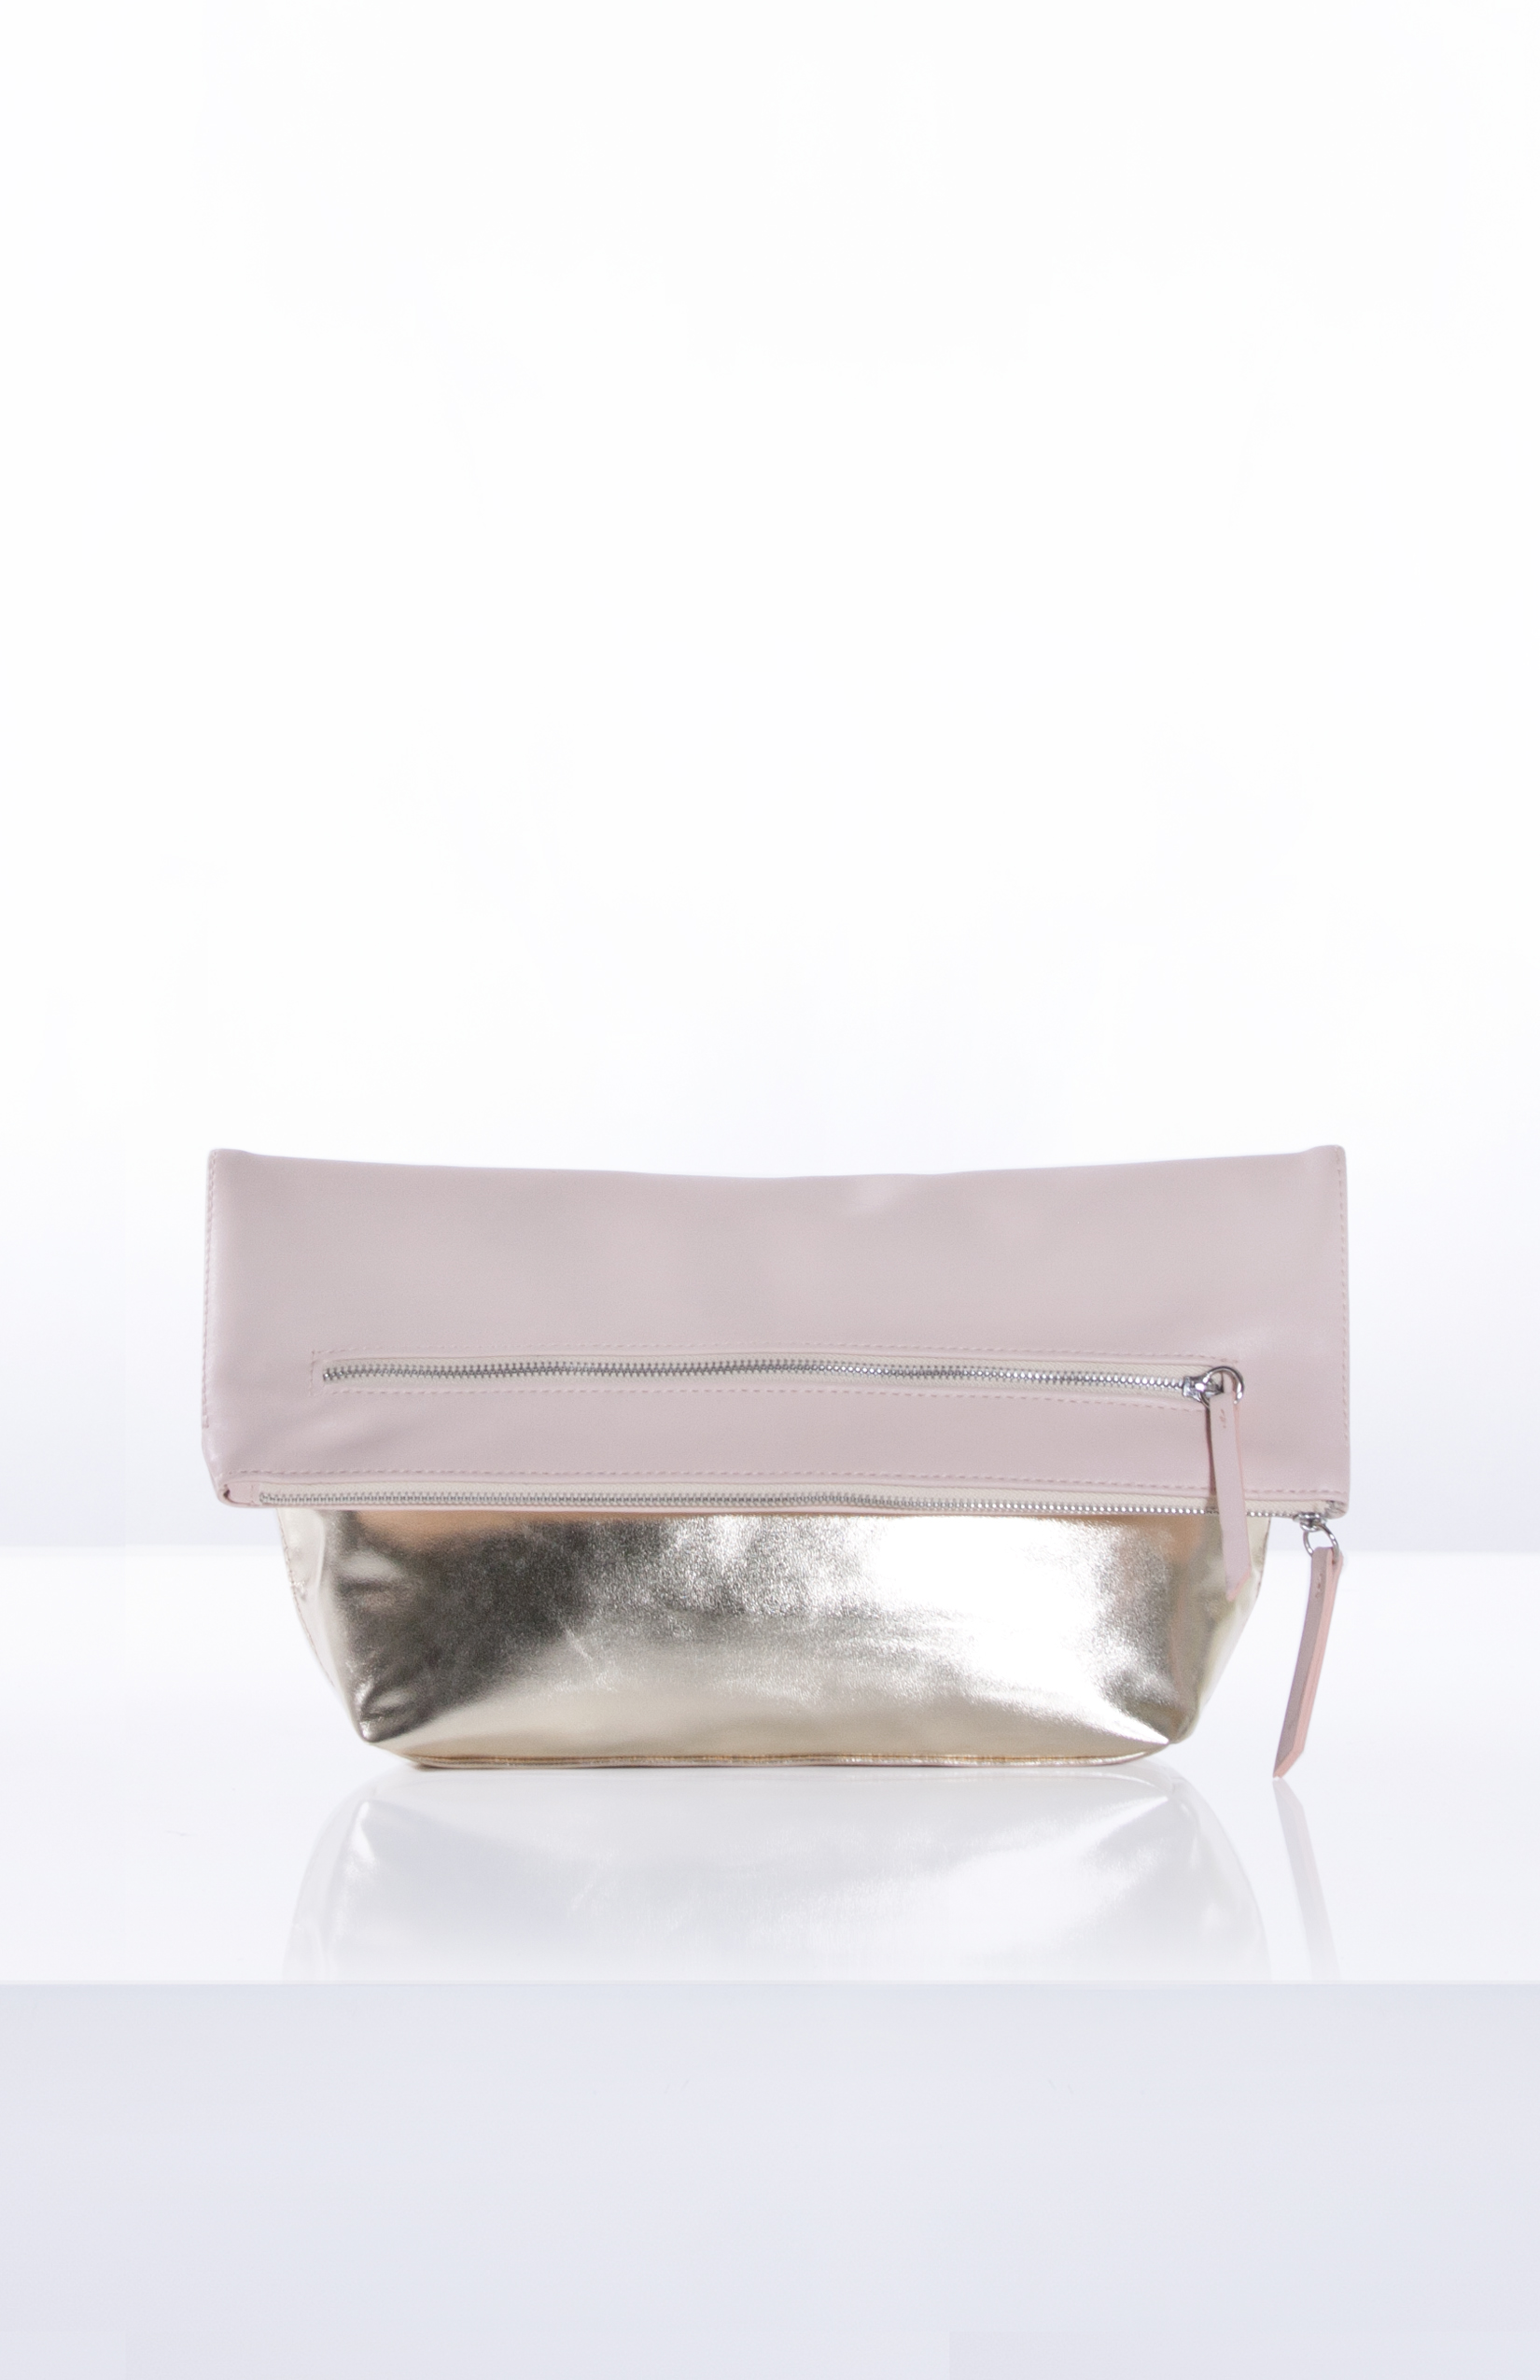 ANASTASIA FOLDOVER CLUTCH- Blush + Pale Gold Gusset